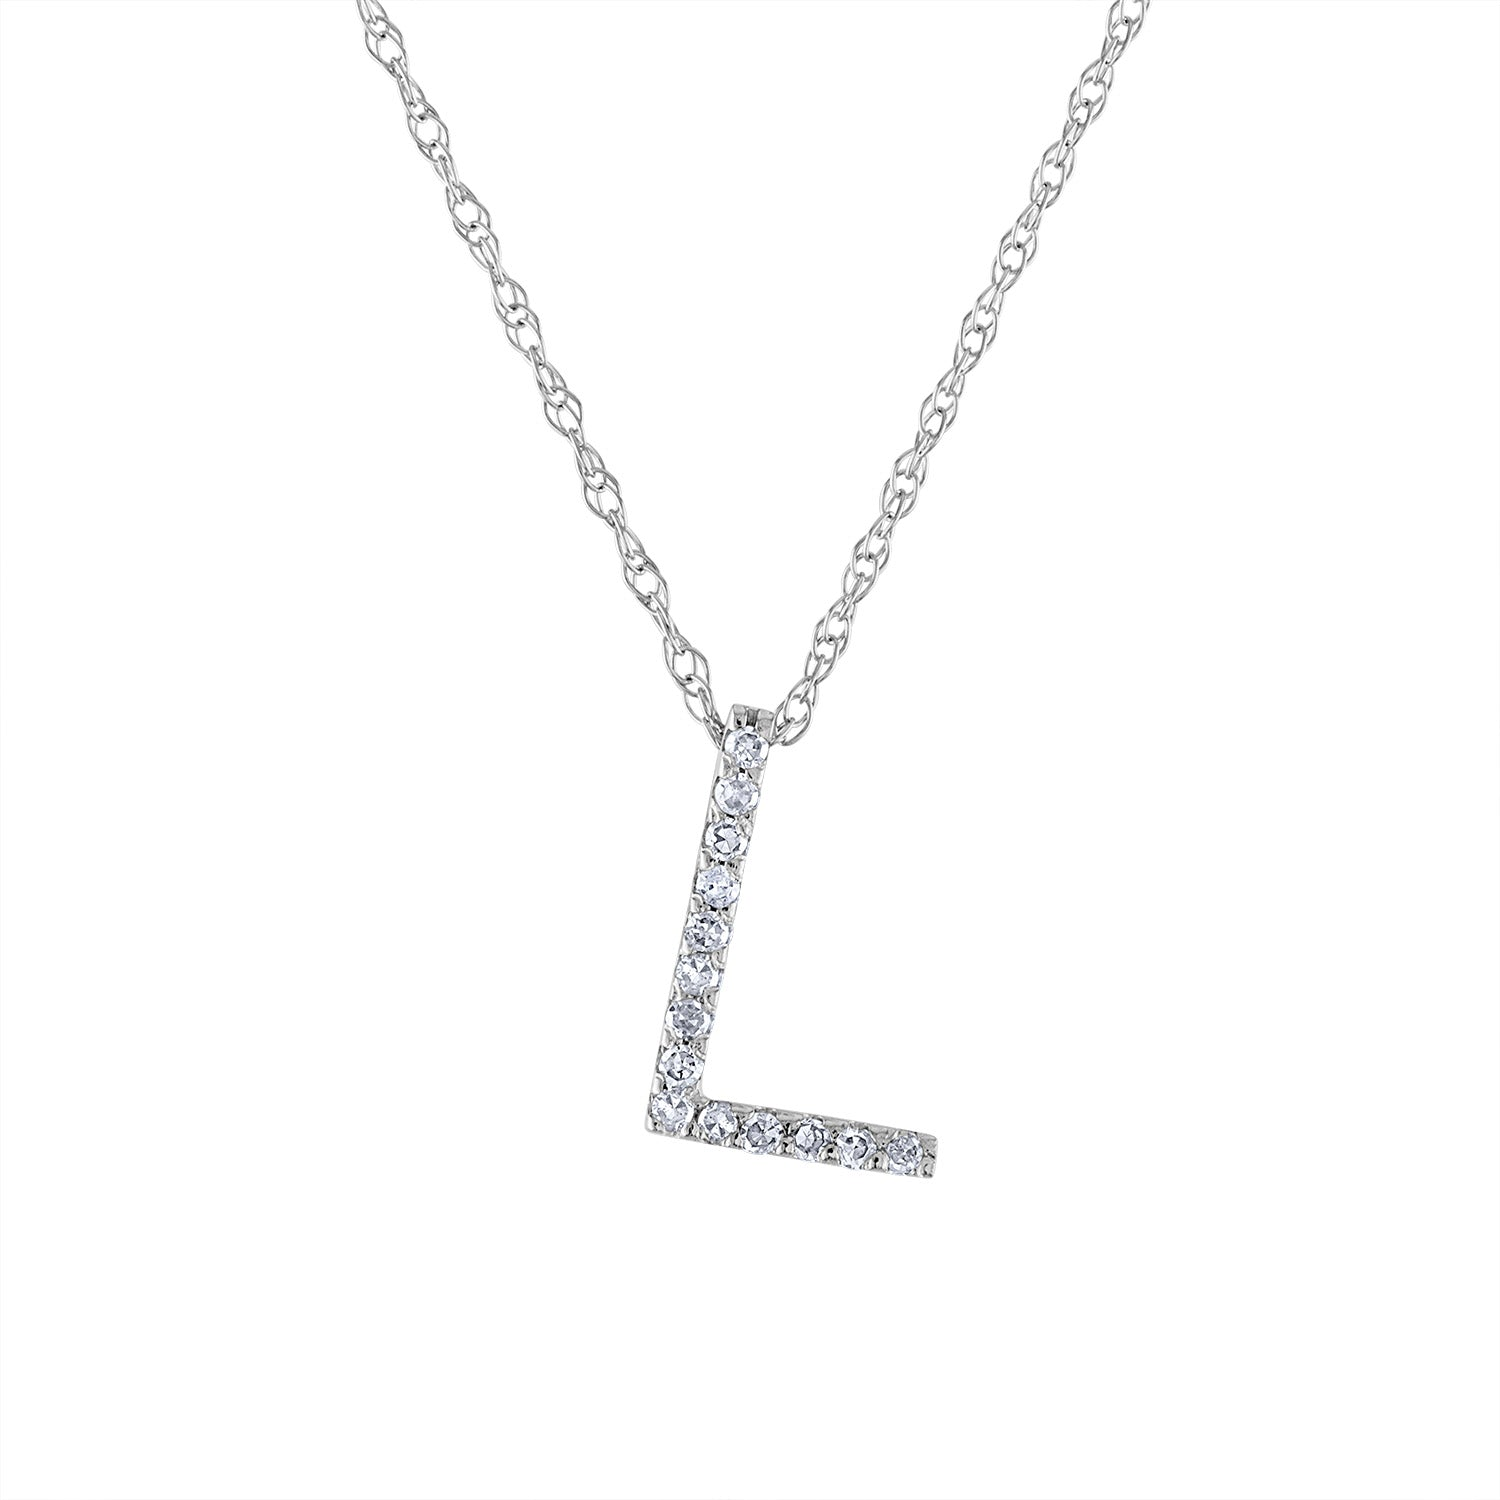 14k White Gold diamond initial L necklace